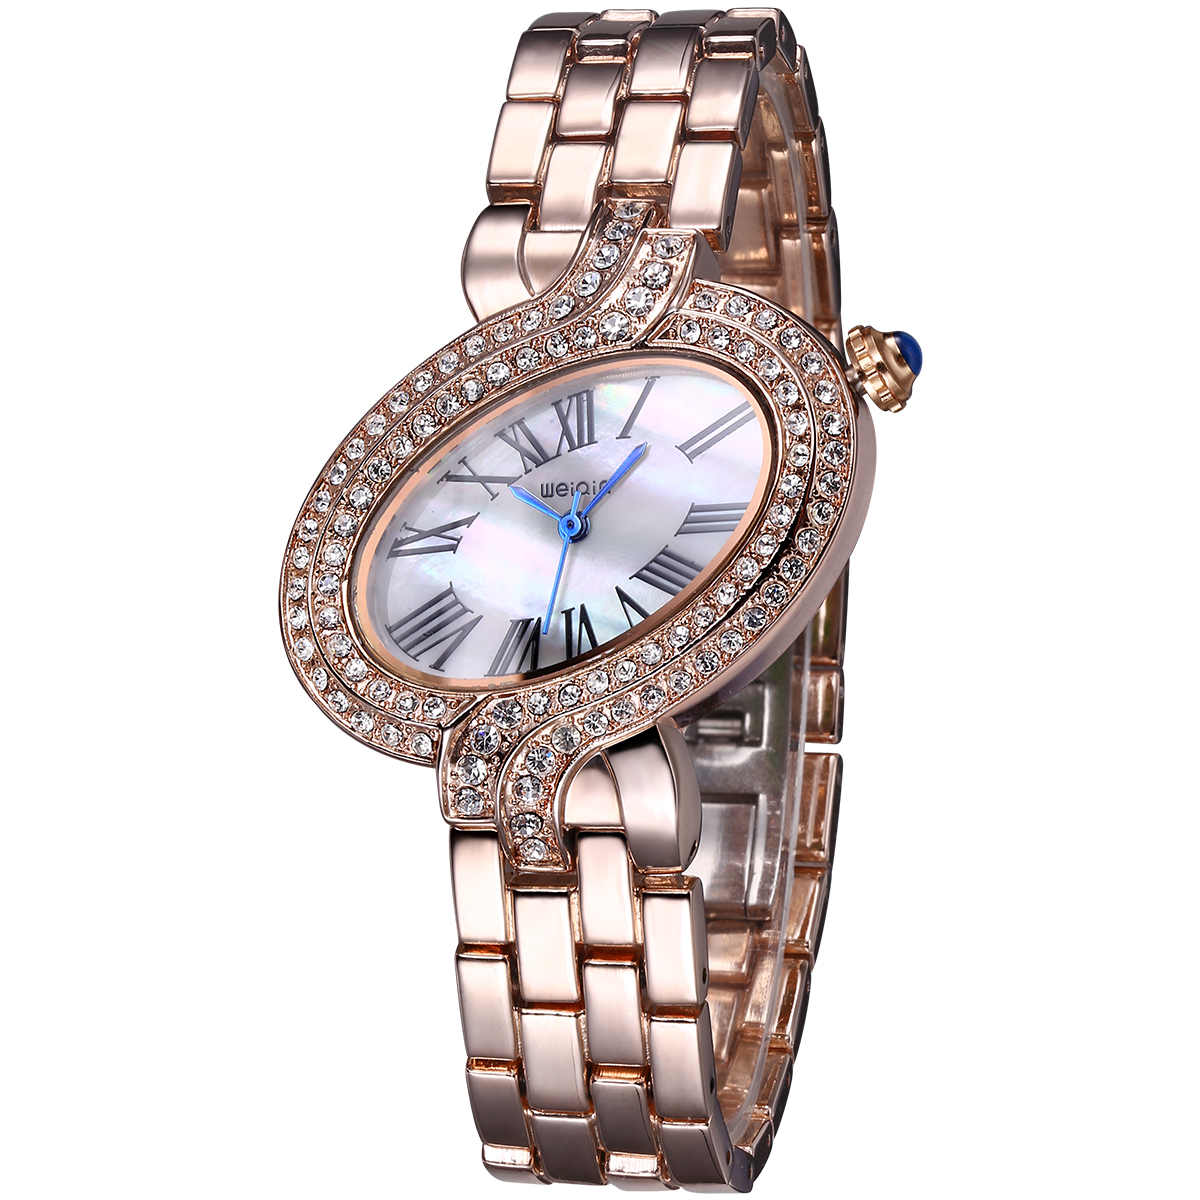 ФОТО WEIQIN Waterproof Quartz Movement Roman Number Scale Unique Design Dial Rhinestone Bezel Fashion Rhinestone Women watches